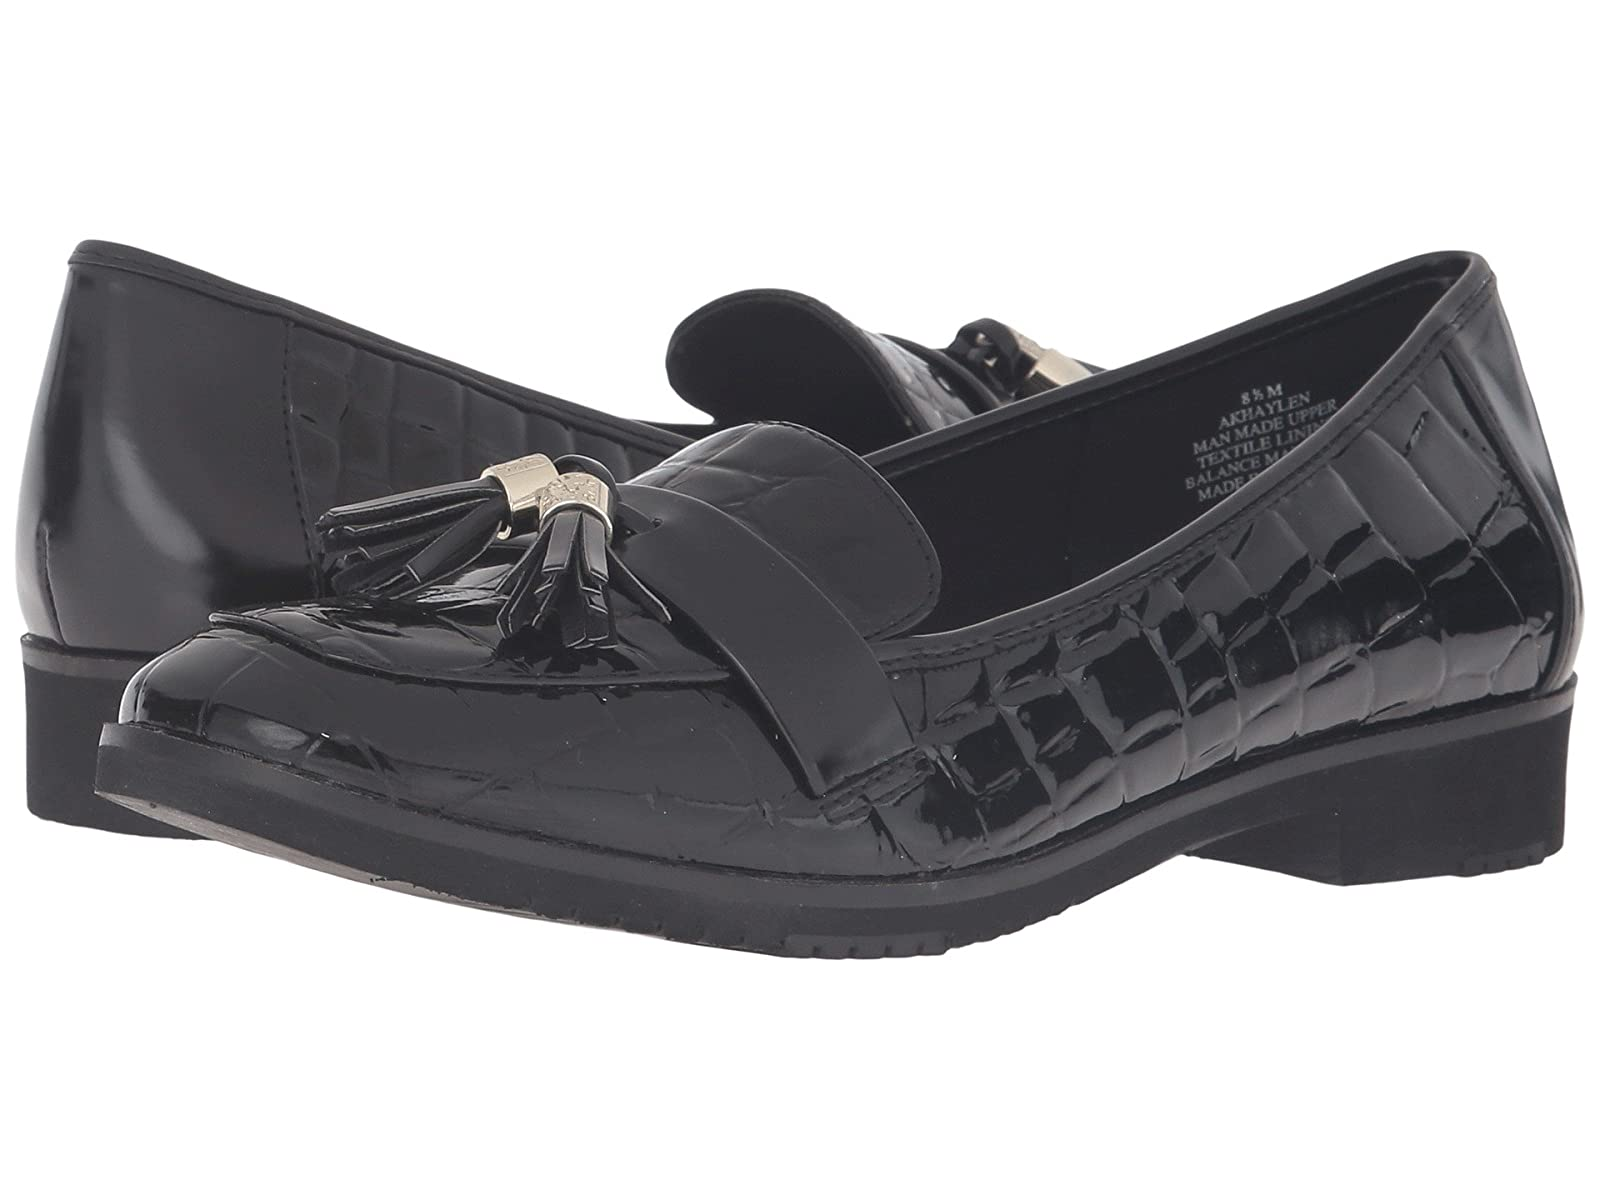 Anne Klein HaylenCheap and distinctive eye-catching shoes